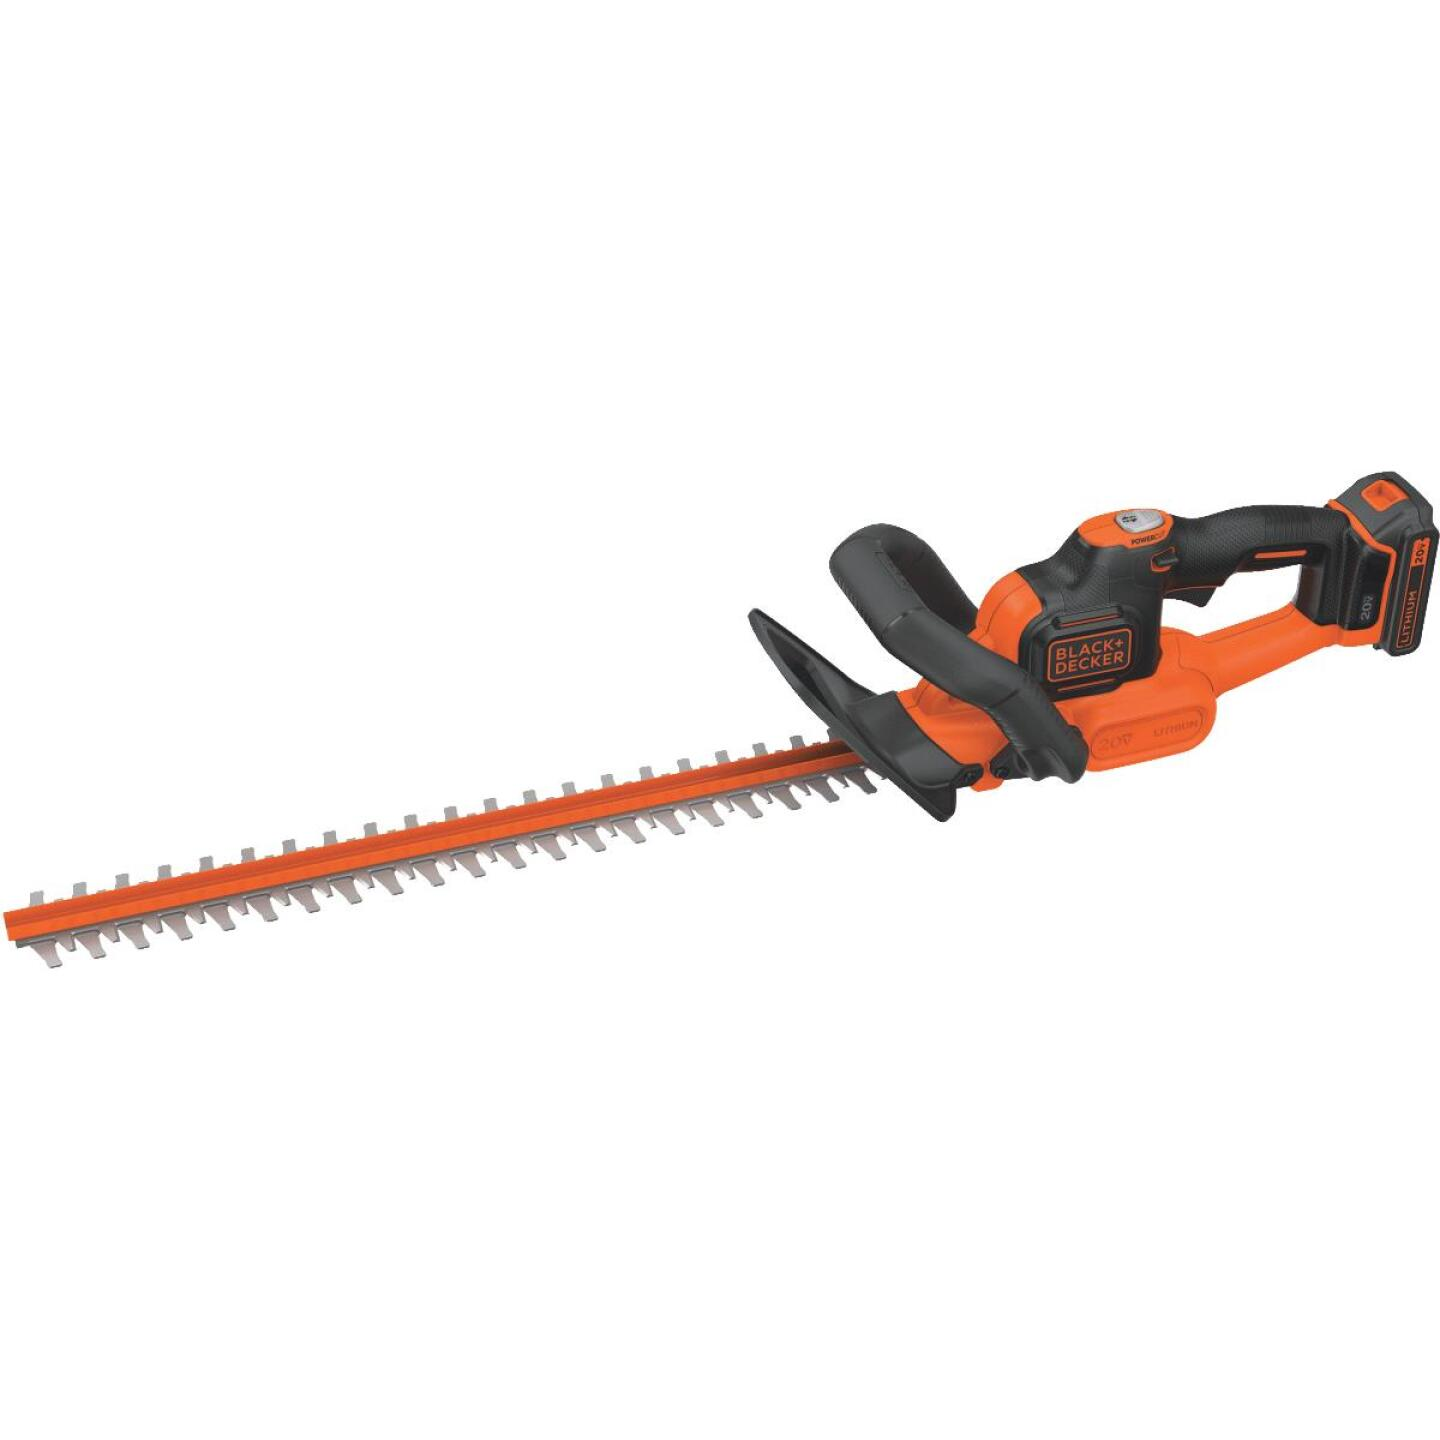 Black & Decker PowerCut 22 In. 20V Lithium Ion Cordless Hedge Trimmer Image 1